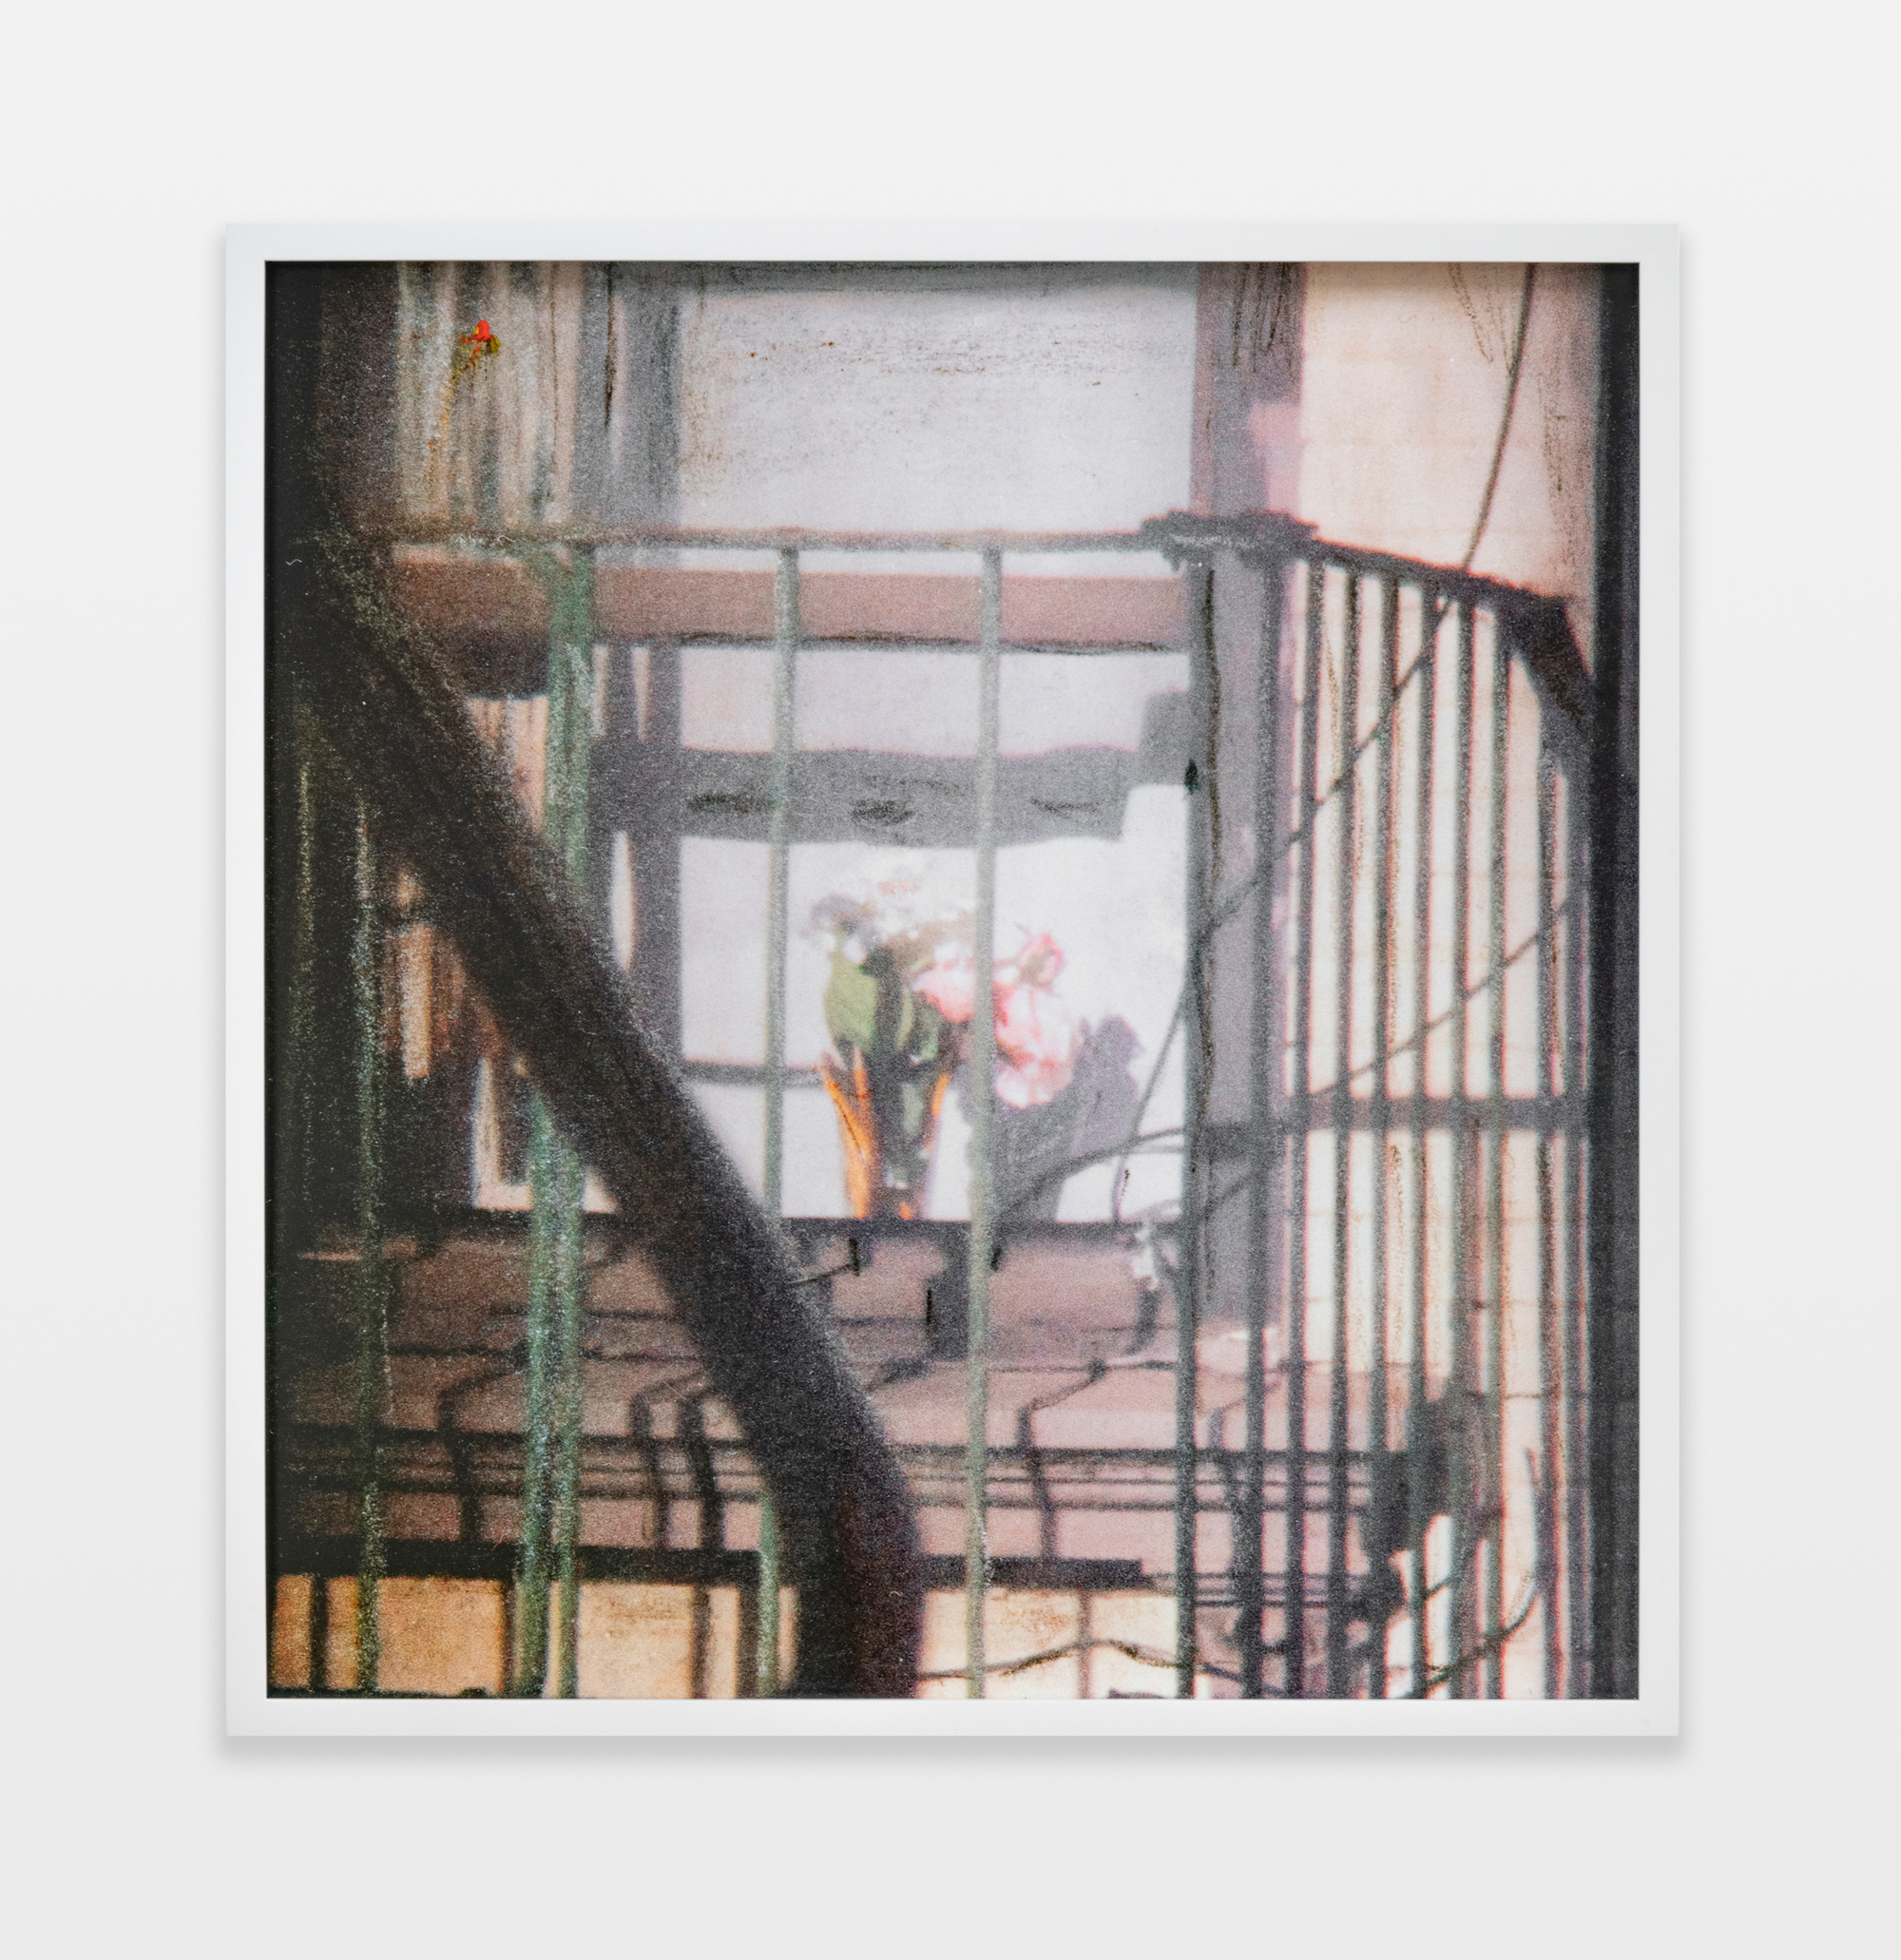 Barbara Ess, Fire Escape [Shut-In Series], 2018-2019, archival pigment print, 23.75h x 22.75w in.